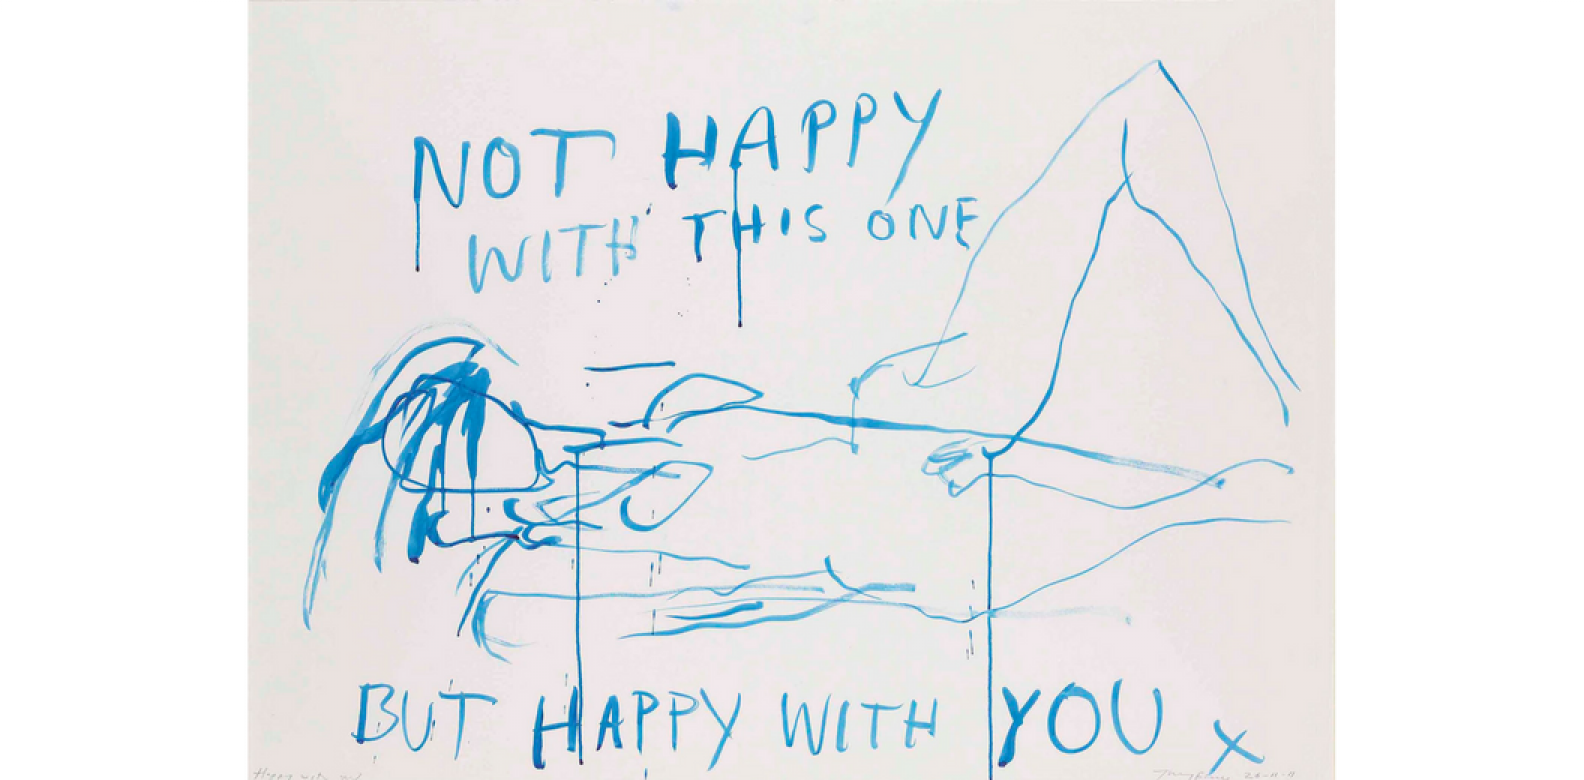 Tracey Emin, Happy With You, 81.5 cm x 111.8 cm, watercolour on paper (Photo: Courtesy of Christie's London)